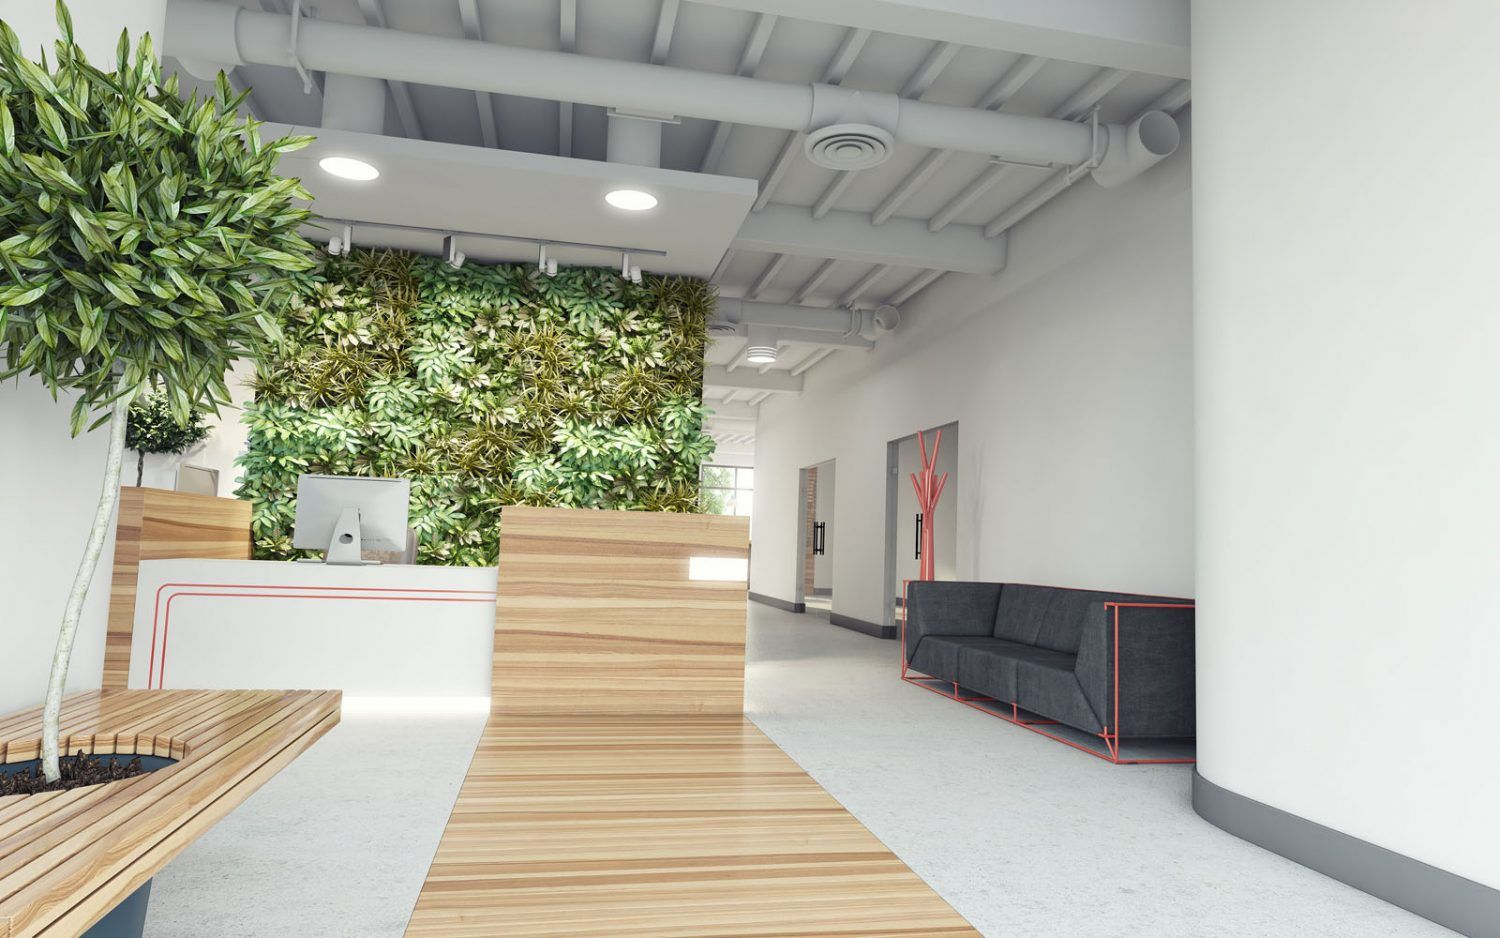 new office design. Biophilic-office-interior-design-for-new-workspace-trends New Office Design